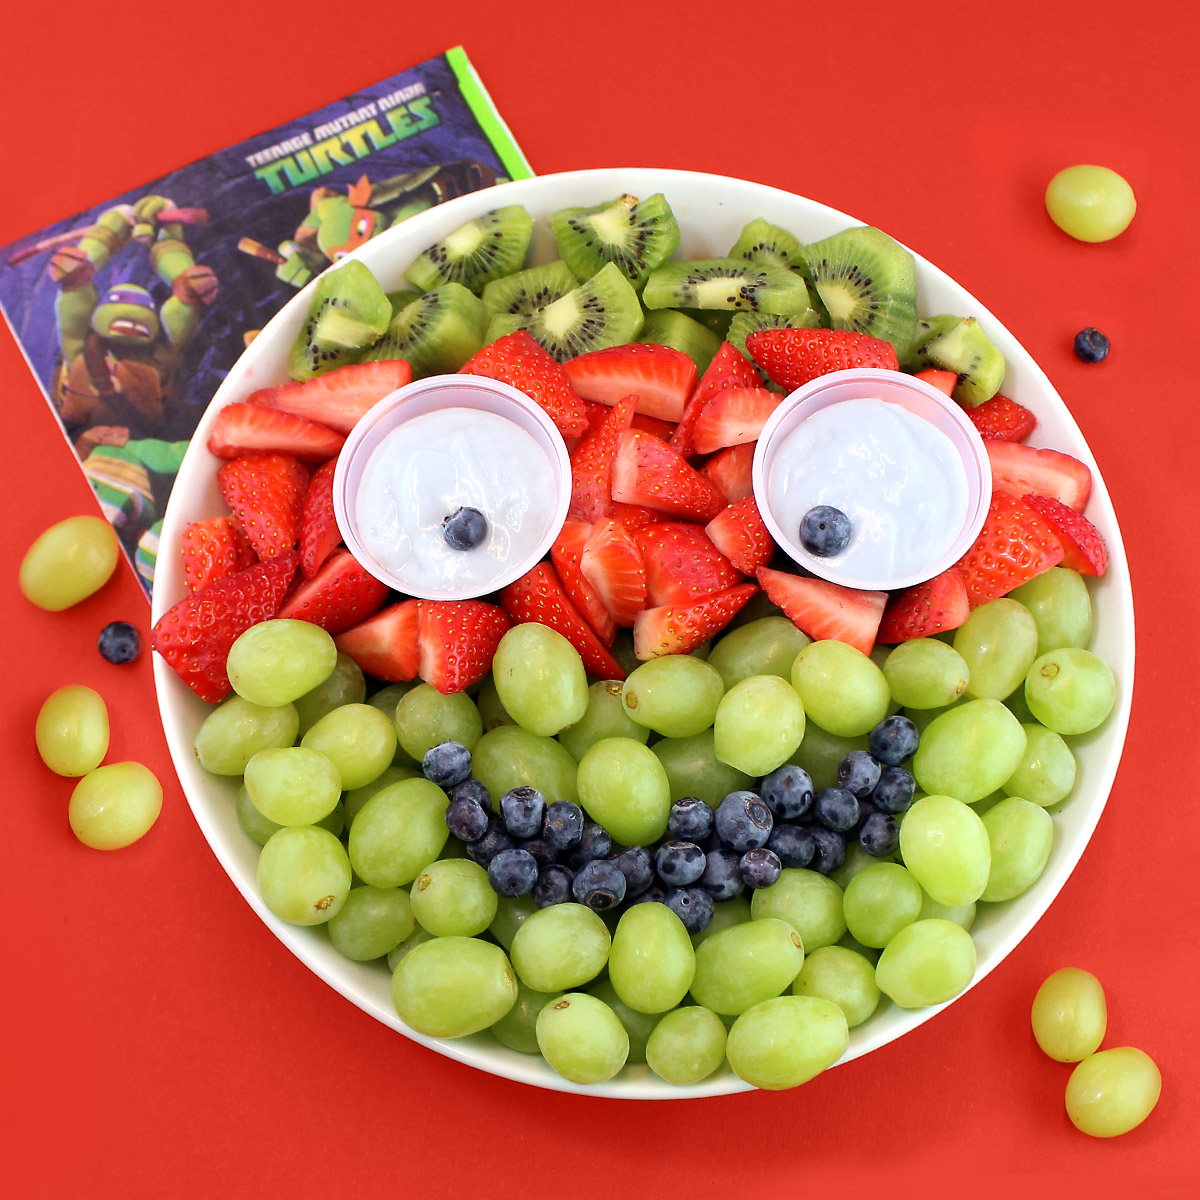 TMNT Fruity Face Fruit Platter Recipe